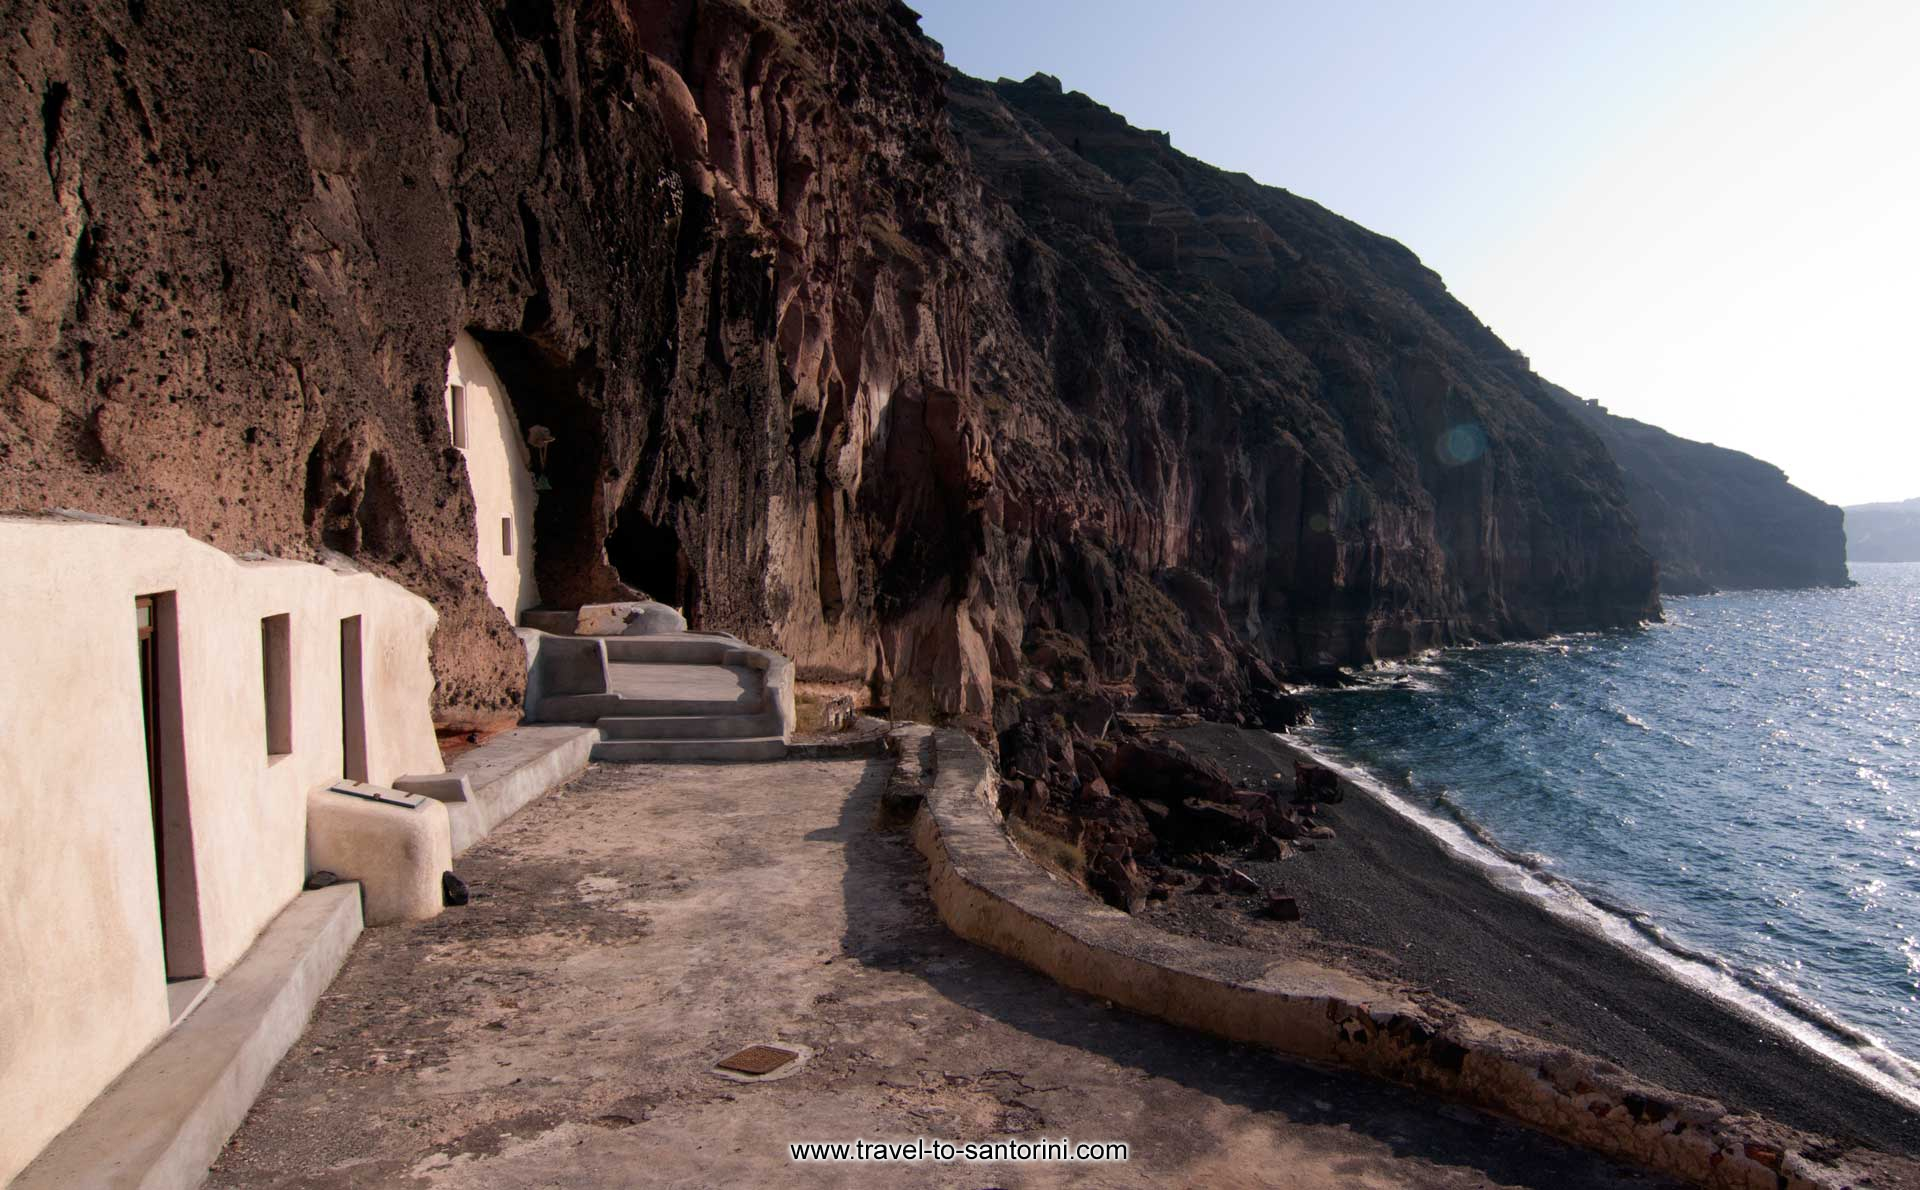 Christos church - View of the church of Christos above the beautiful beach by Ioannis Matrozos